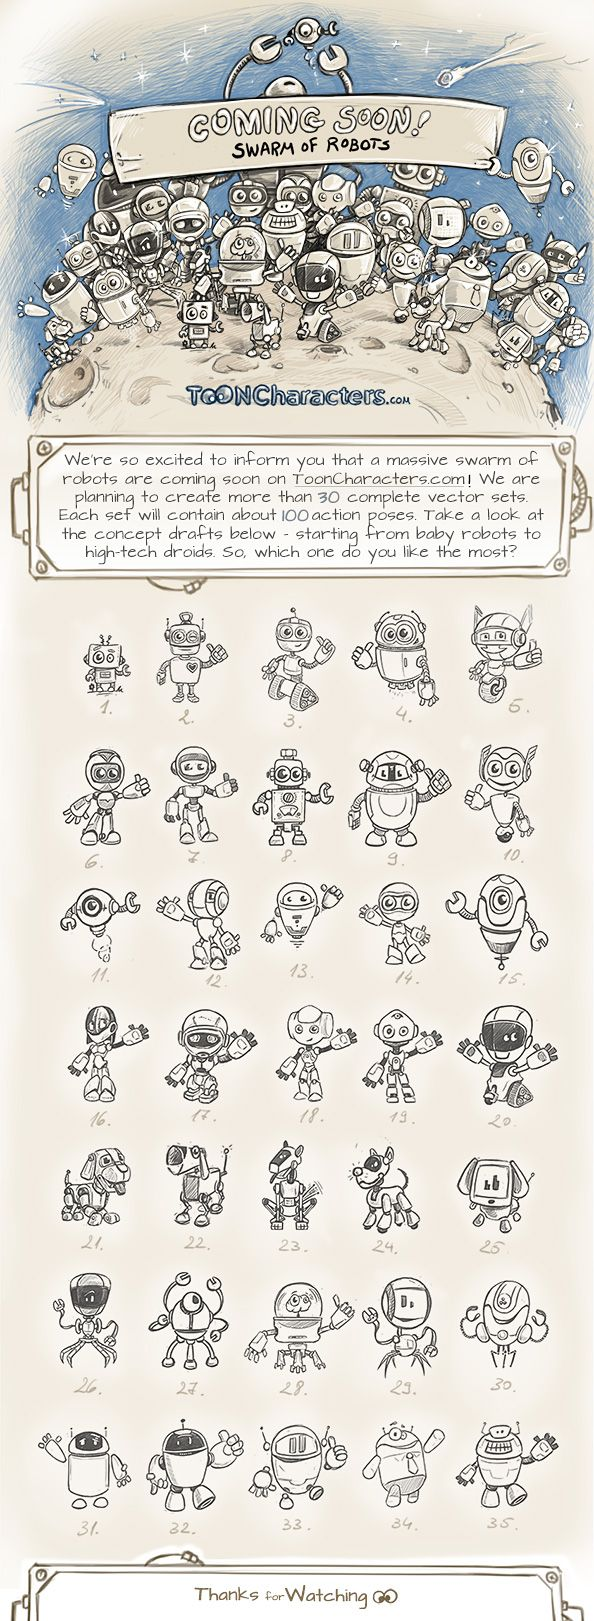 Swarm of Robot Toon Characters is Coming Soon!